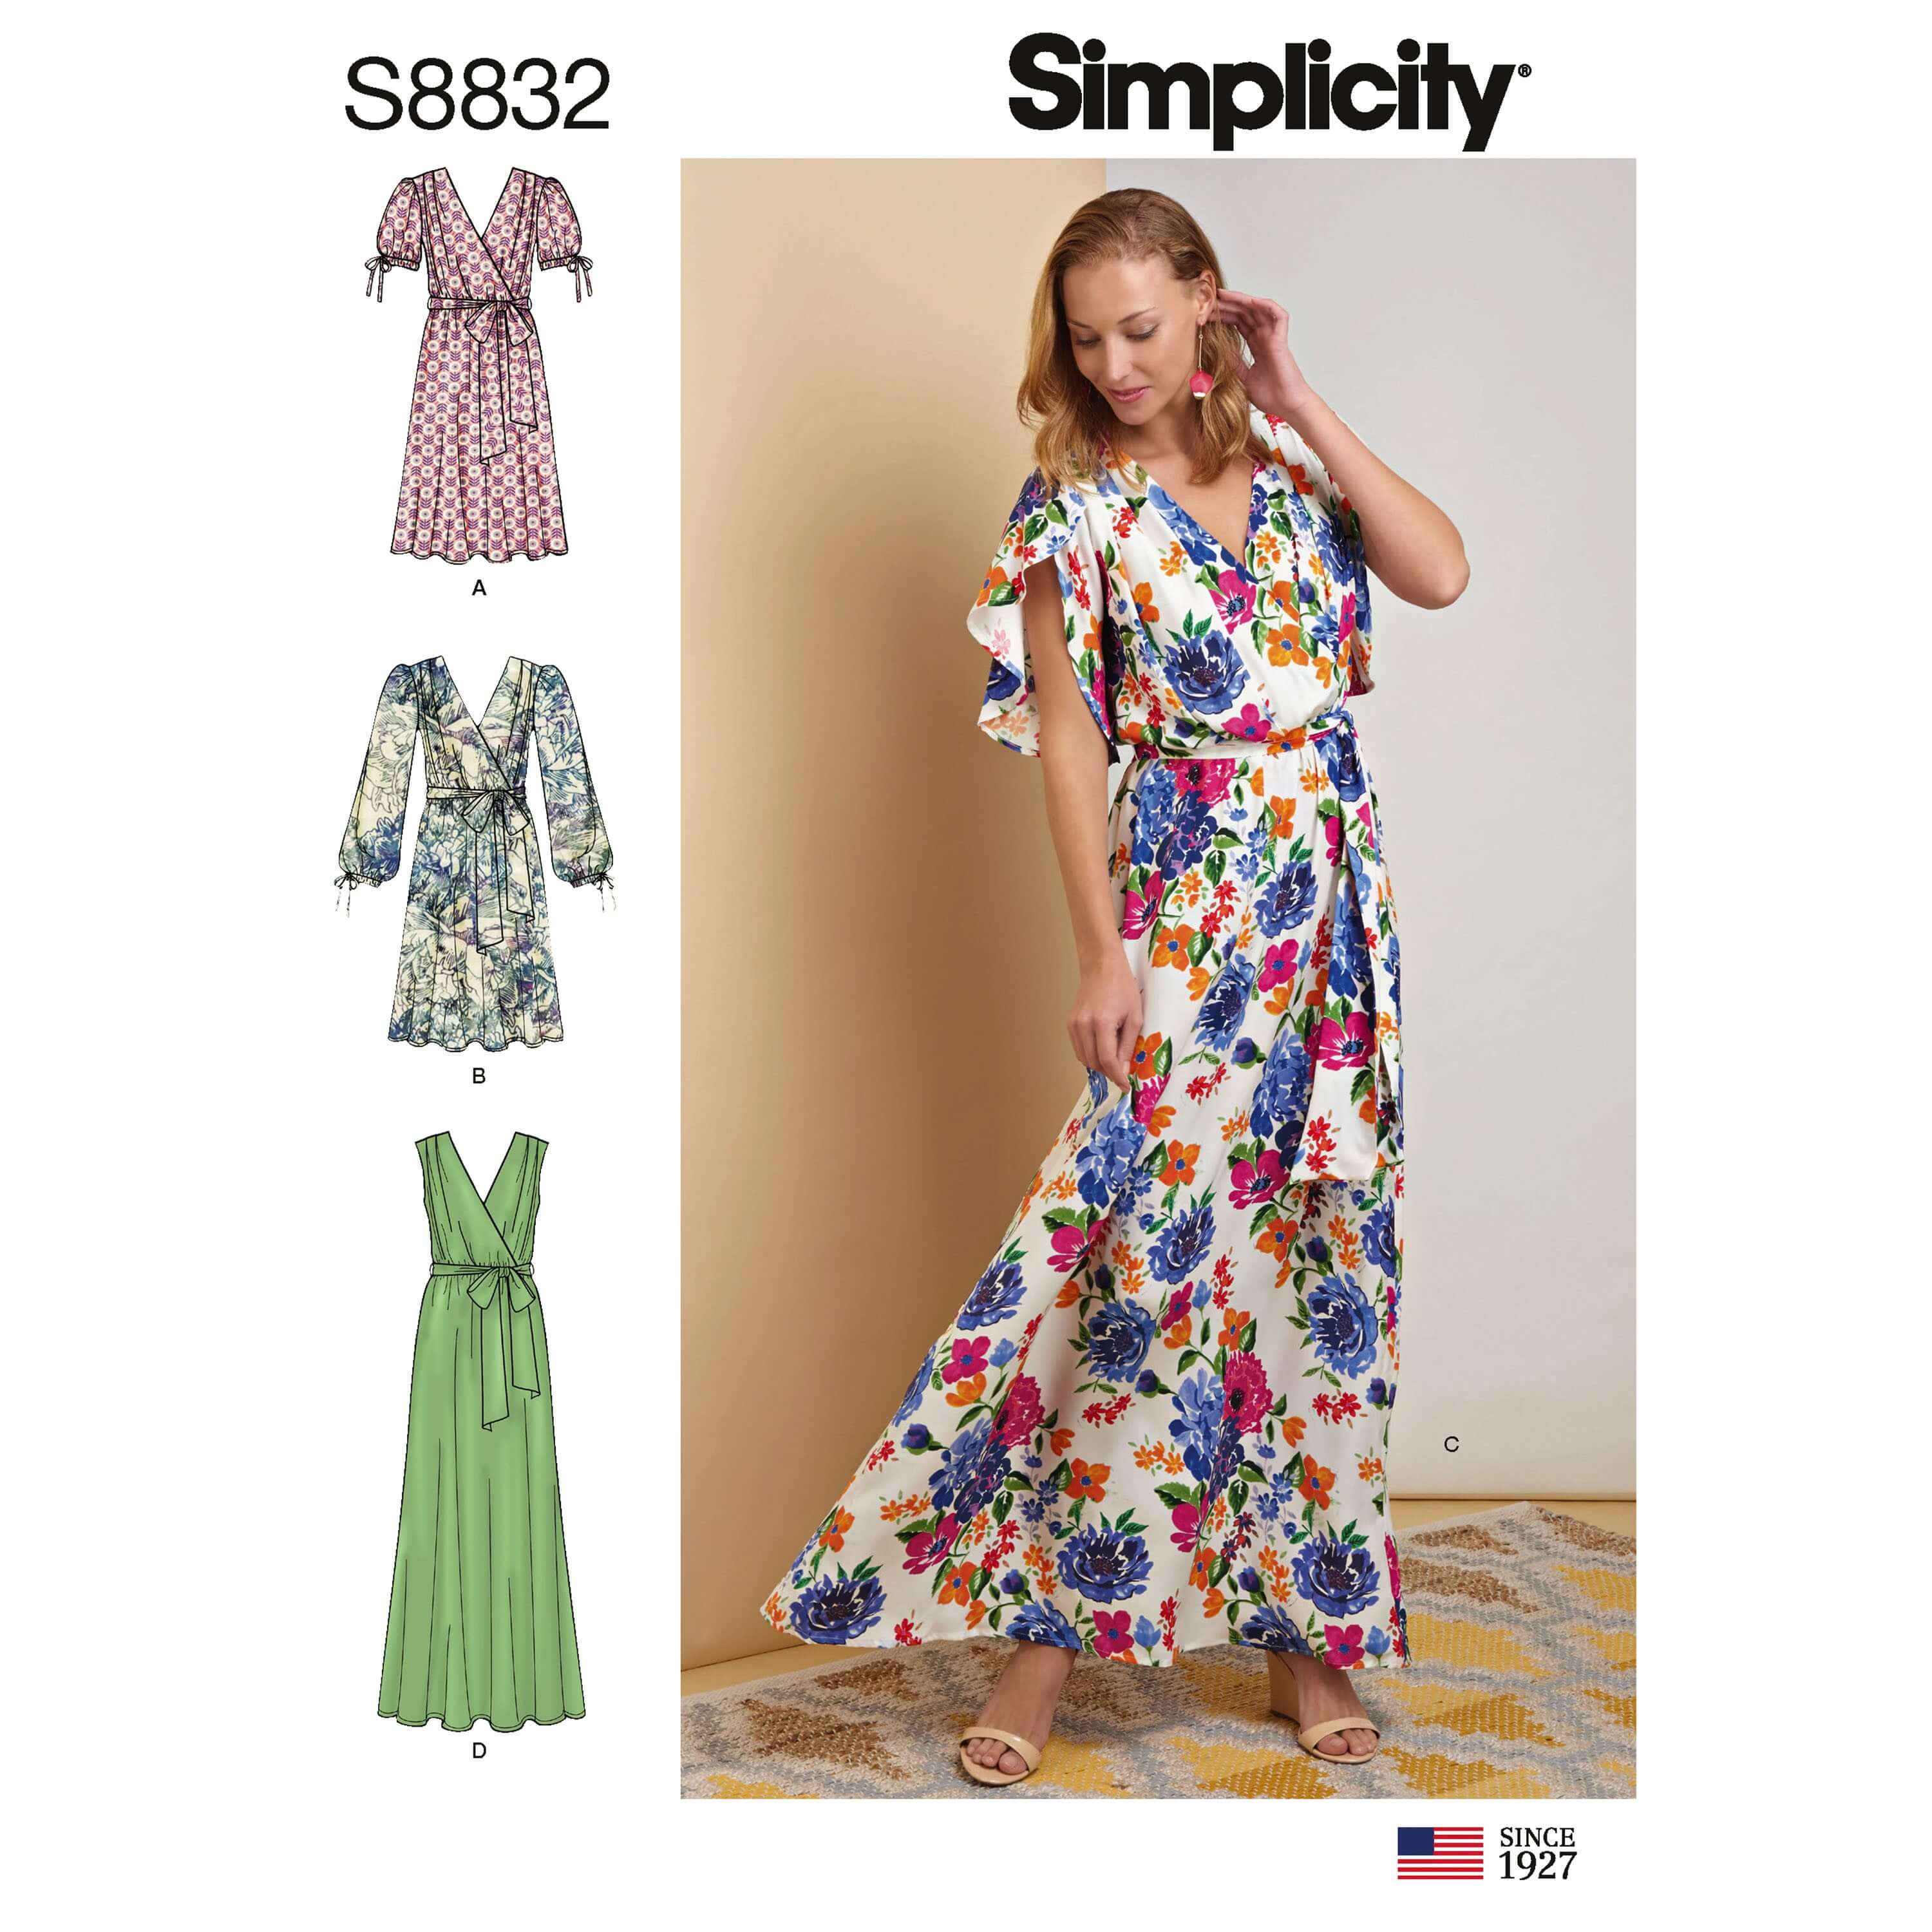 Simplicity Sewing Pattern 8832 Women's Pullover Dress with Tie Belt